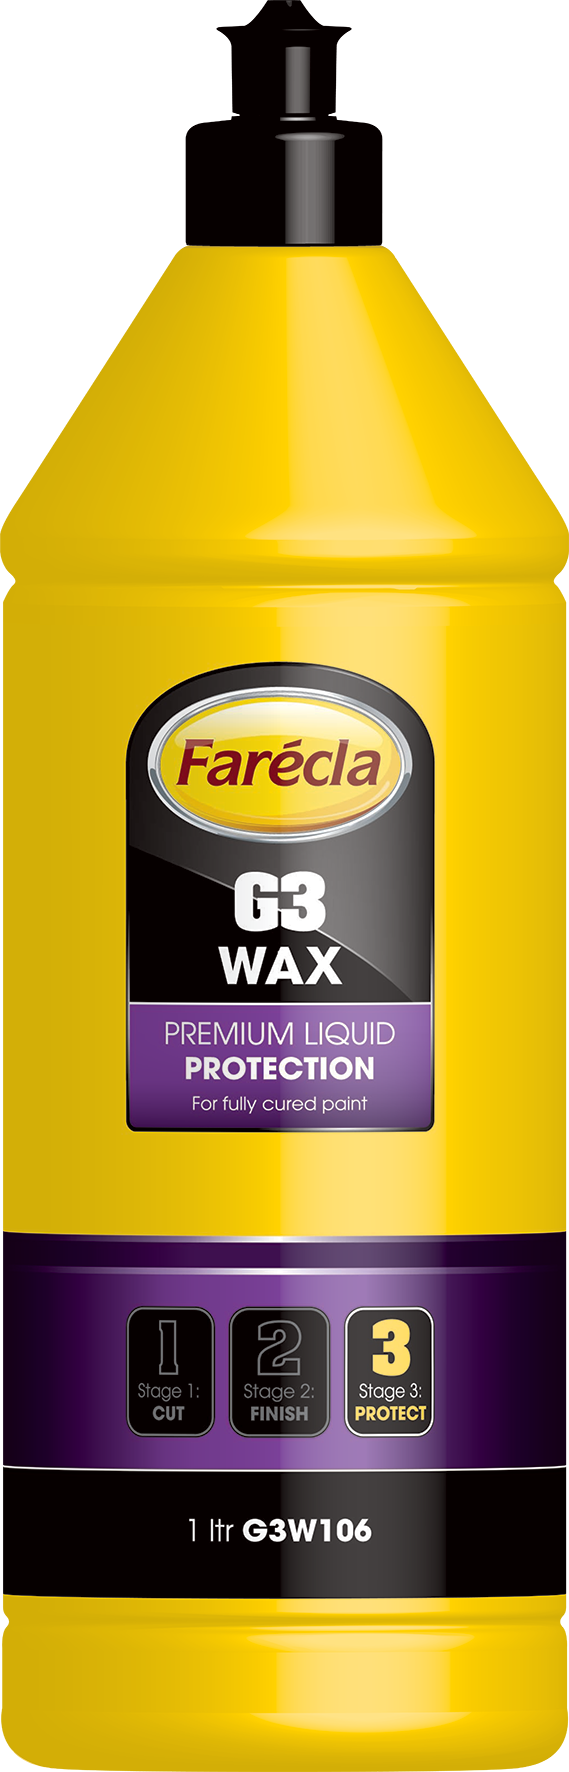 Farecla G3 Wax Premium Liquid Protection 1L